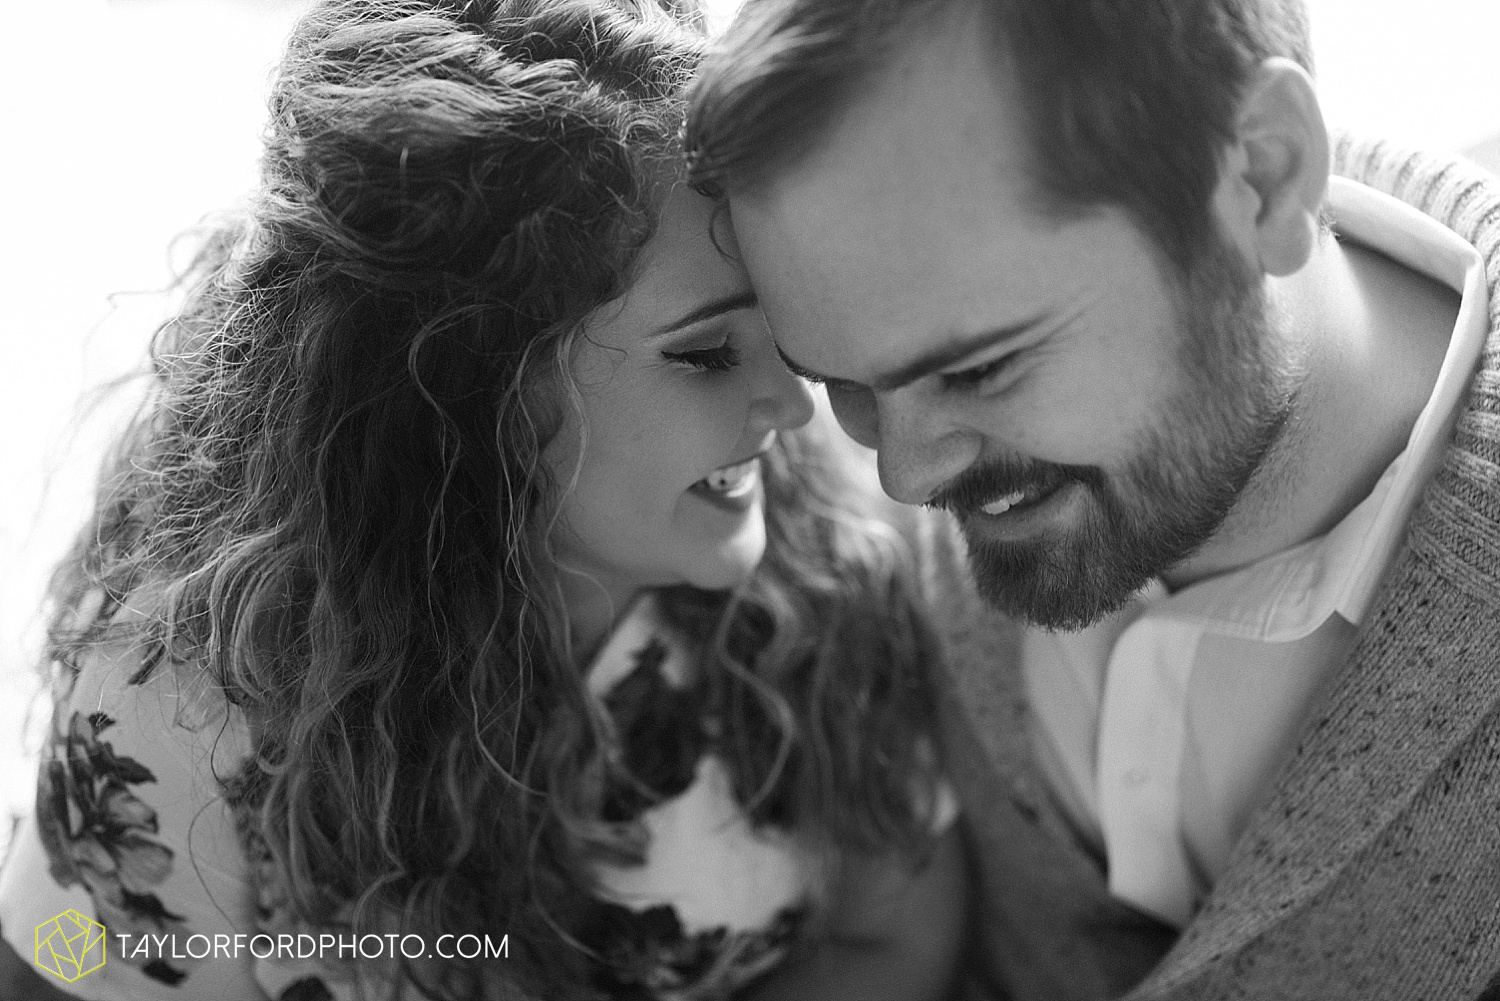 van_wert_ohio_couples_photographer_first_christmas_quincy_and_weston_taylor_ford_0947.jpg